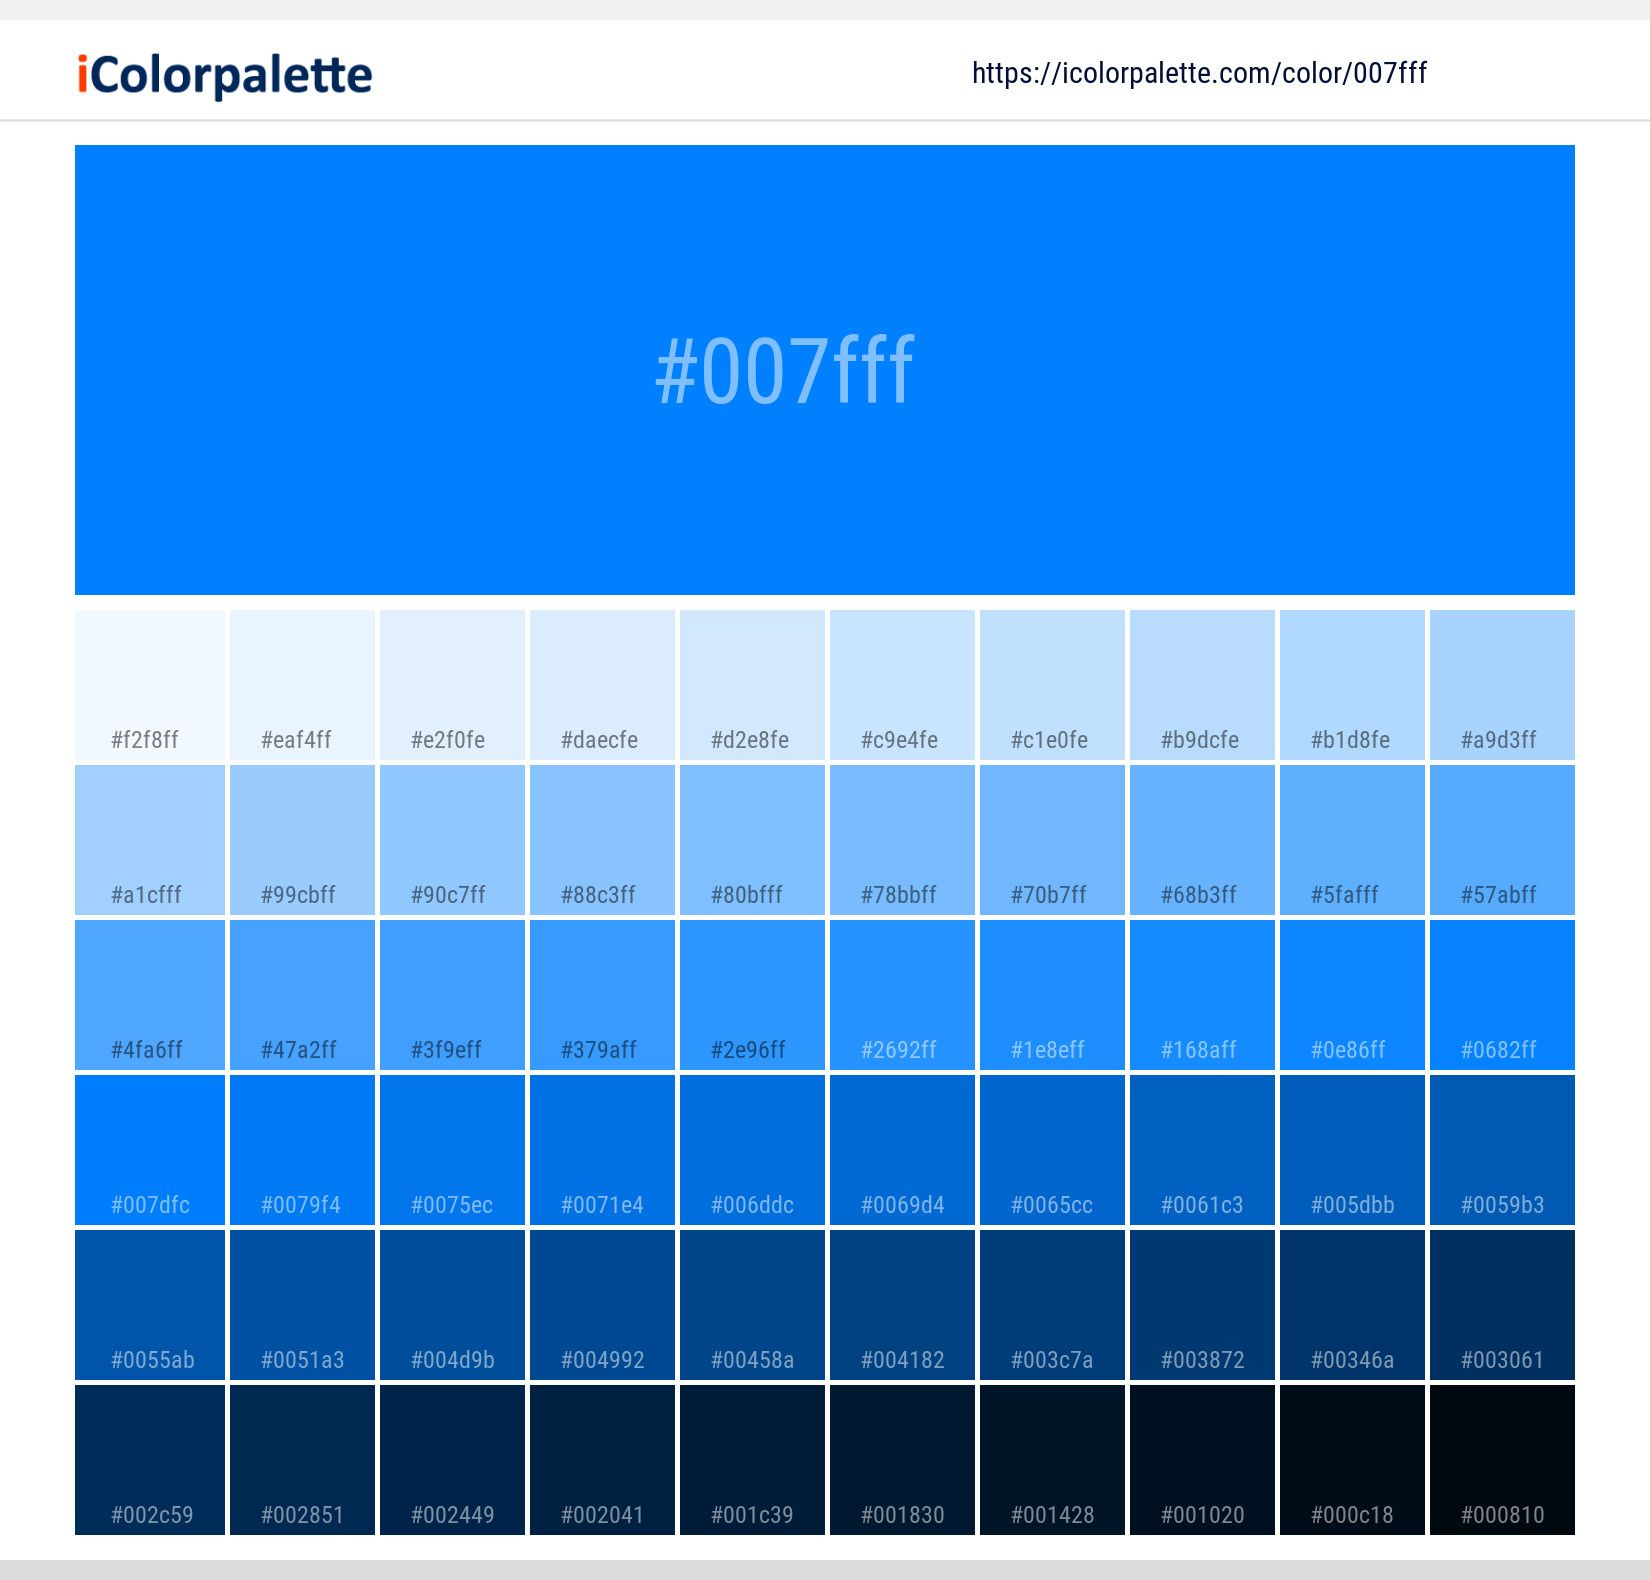 color space information 007fff similar pantone name schemes light darkshades in 2020 solid backgrounds blue guide book 659